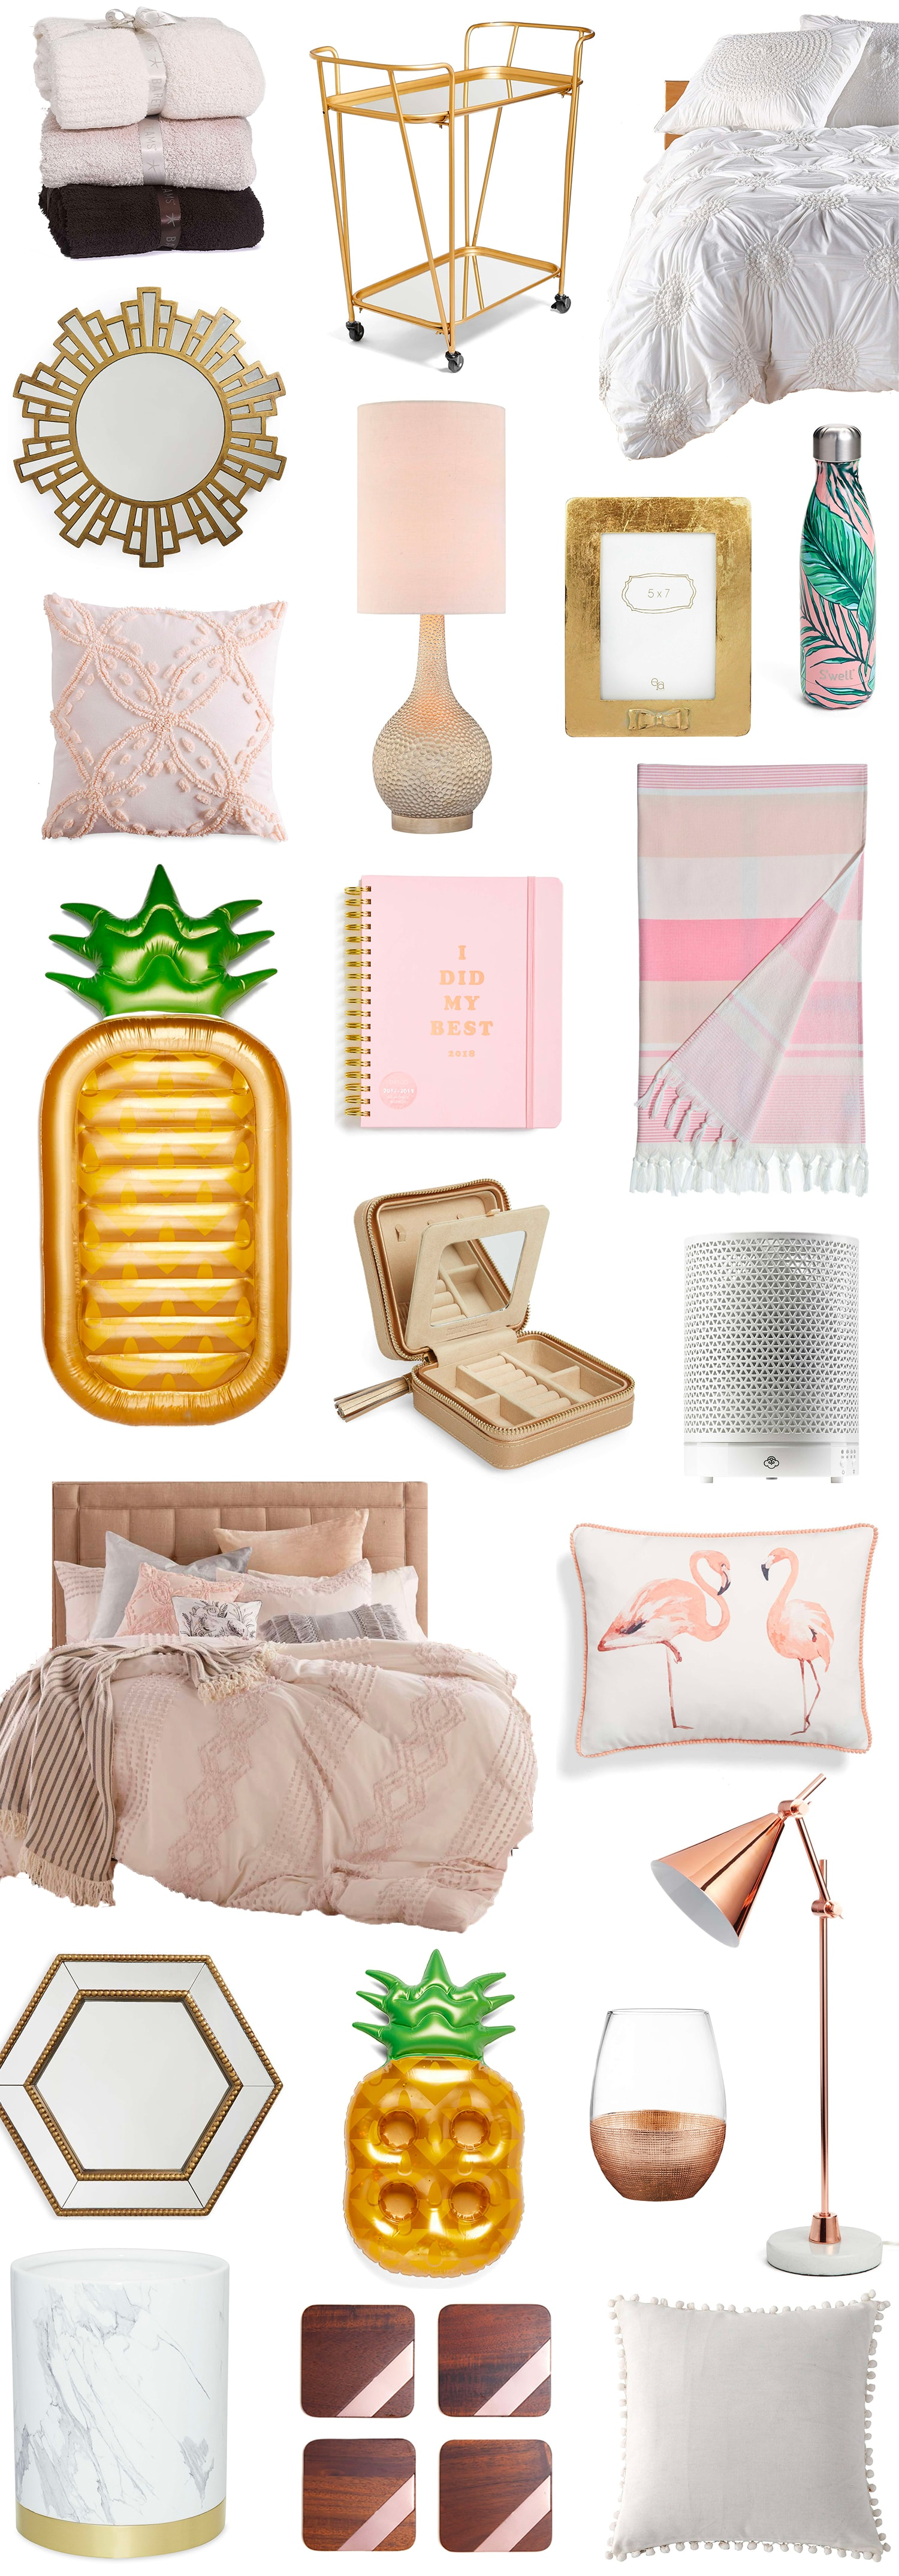 Best Home Decor Deals From The Nordstrom Anniversary Sale: nordstrom home decor sale